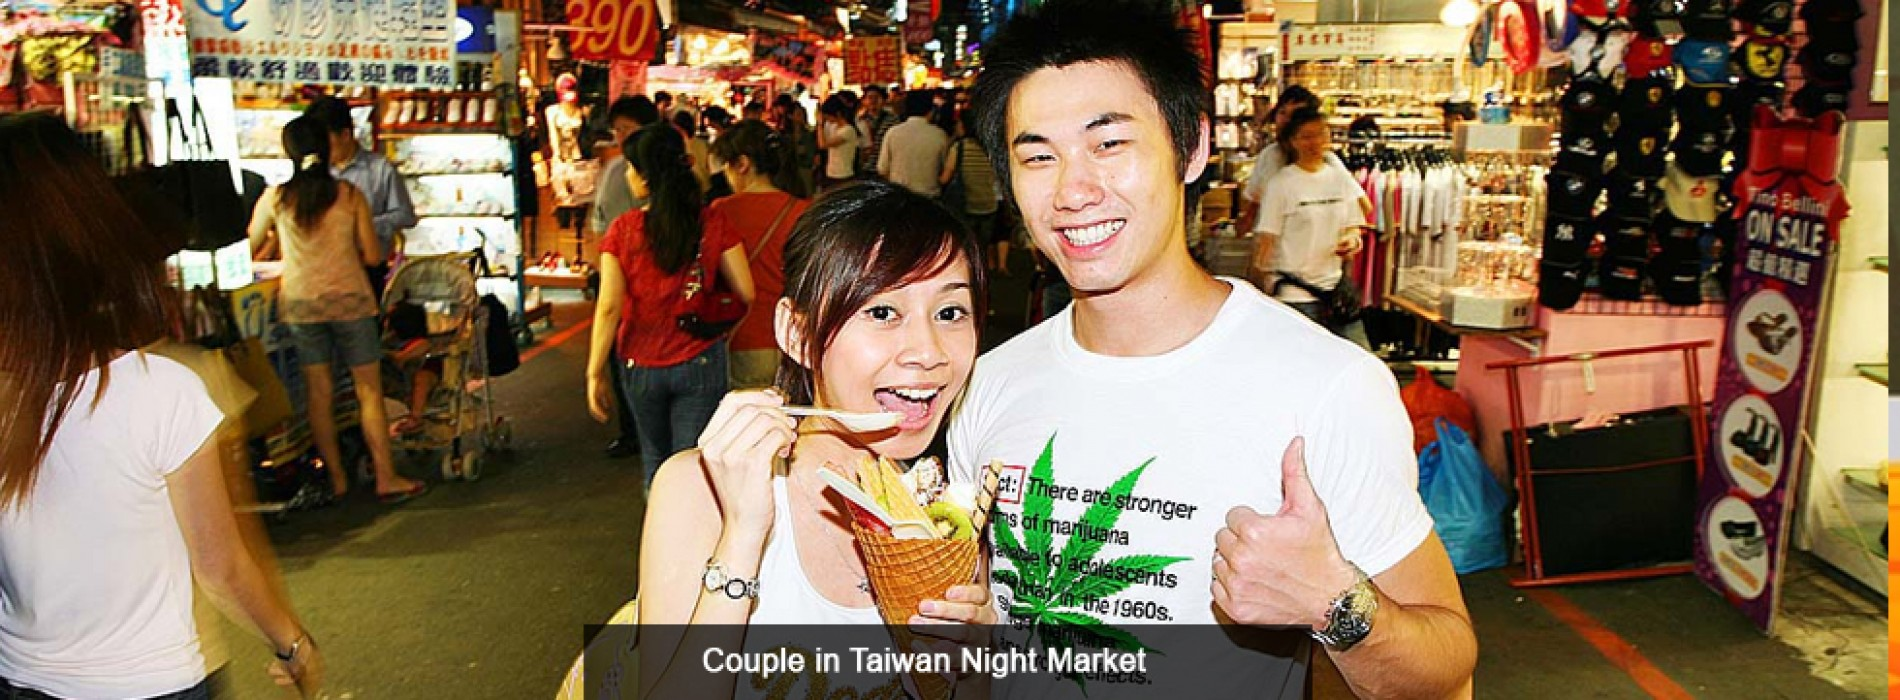 Taiwan: The Country that never sleeps…